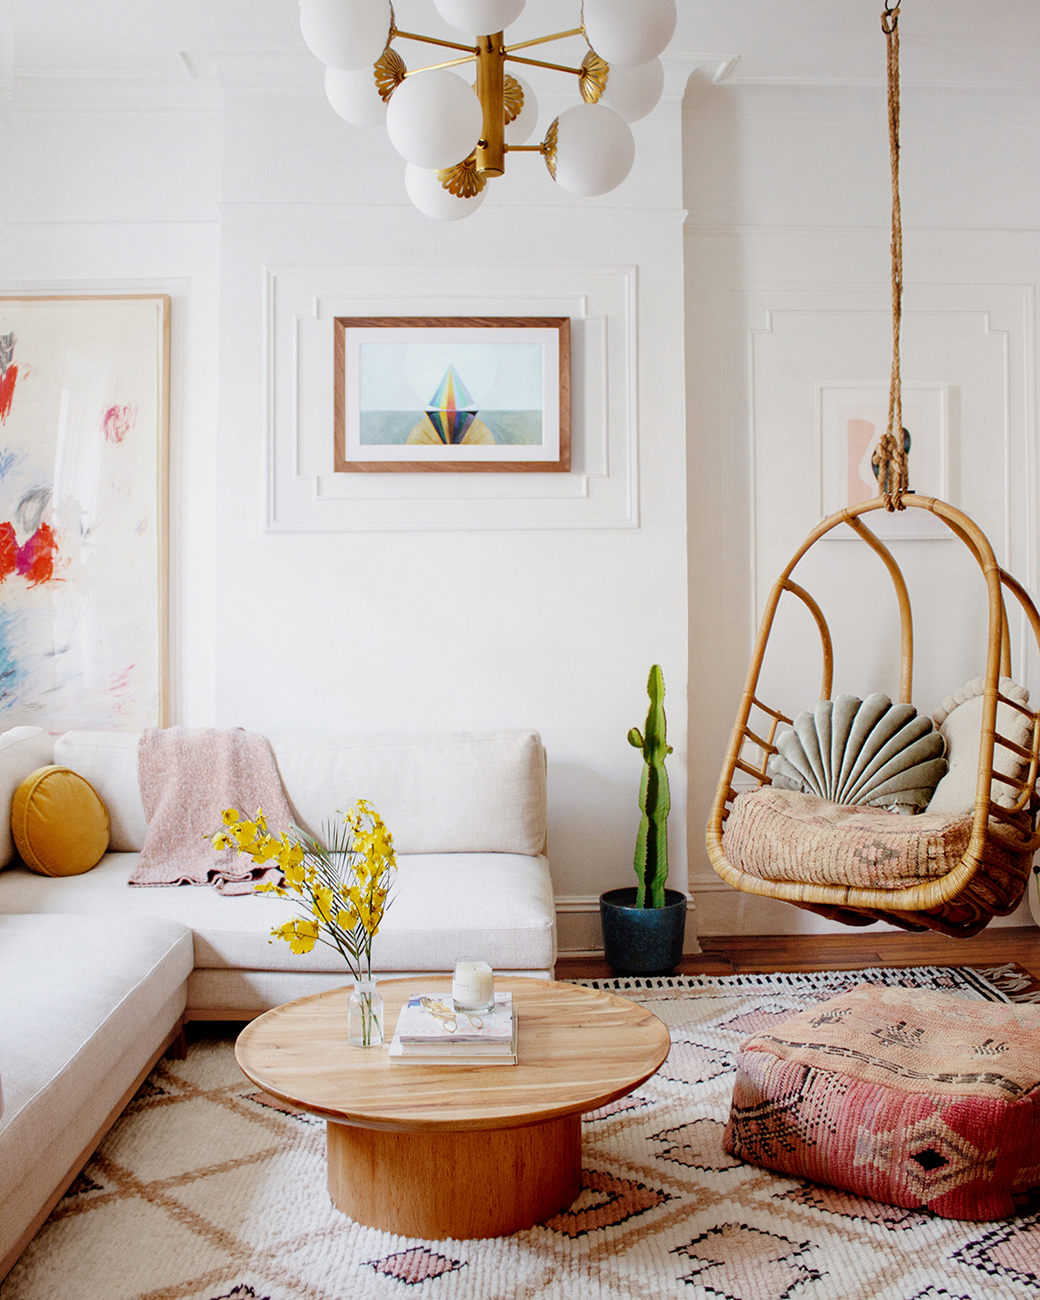 Bohemian style in decoration